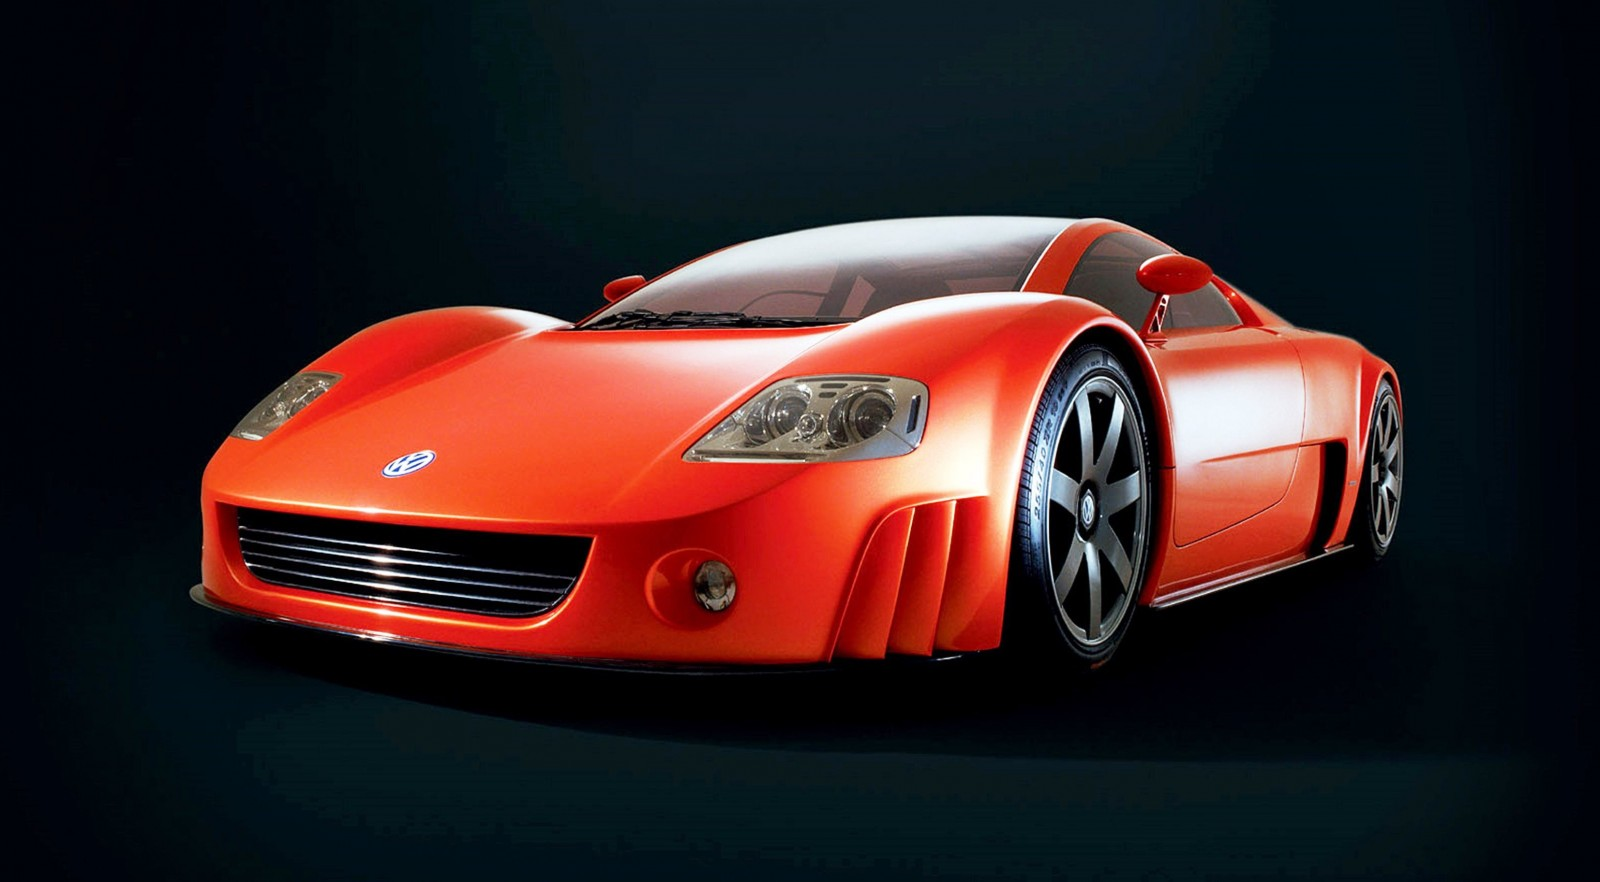 2001 Volkswagen W12 Coupe Concept Introduces Huge Engine and Hypercar Performance to VW Lore 2